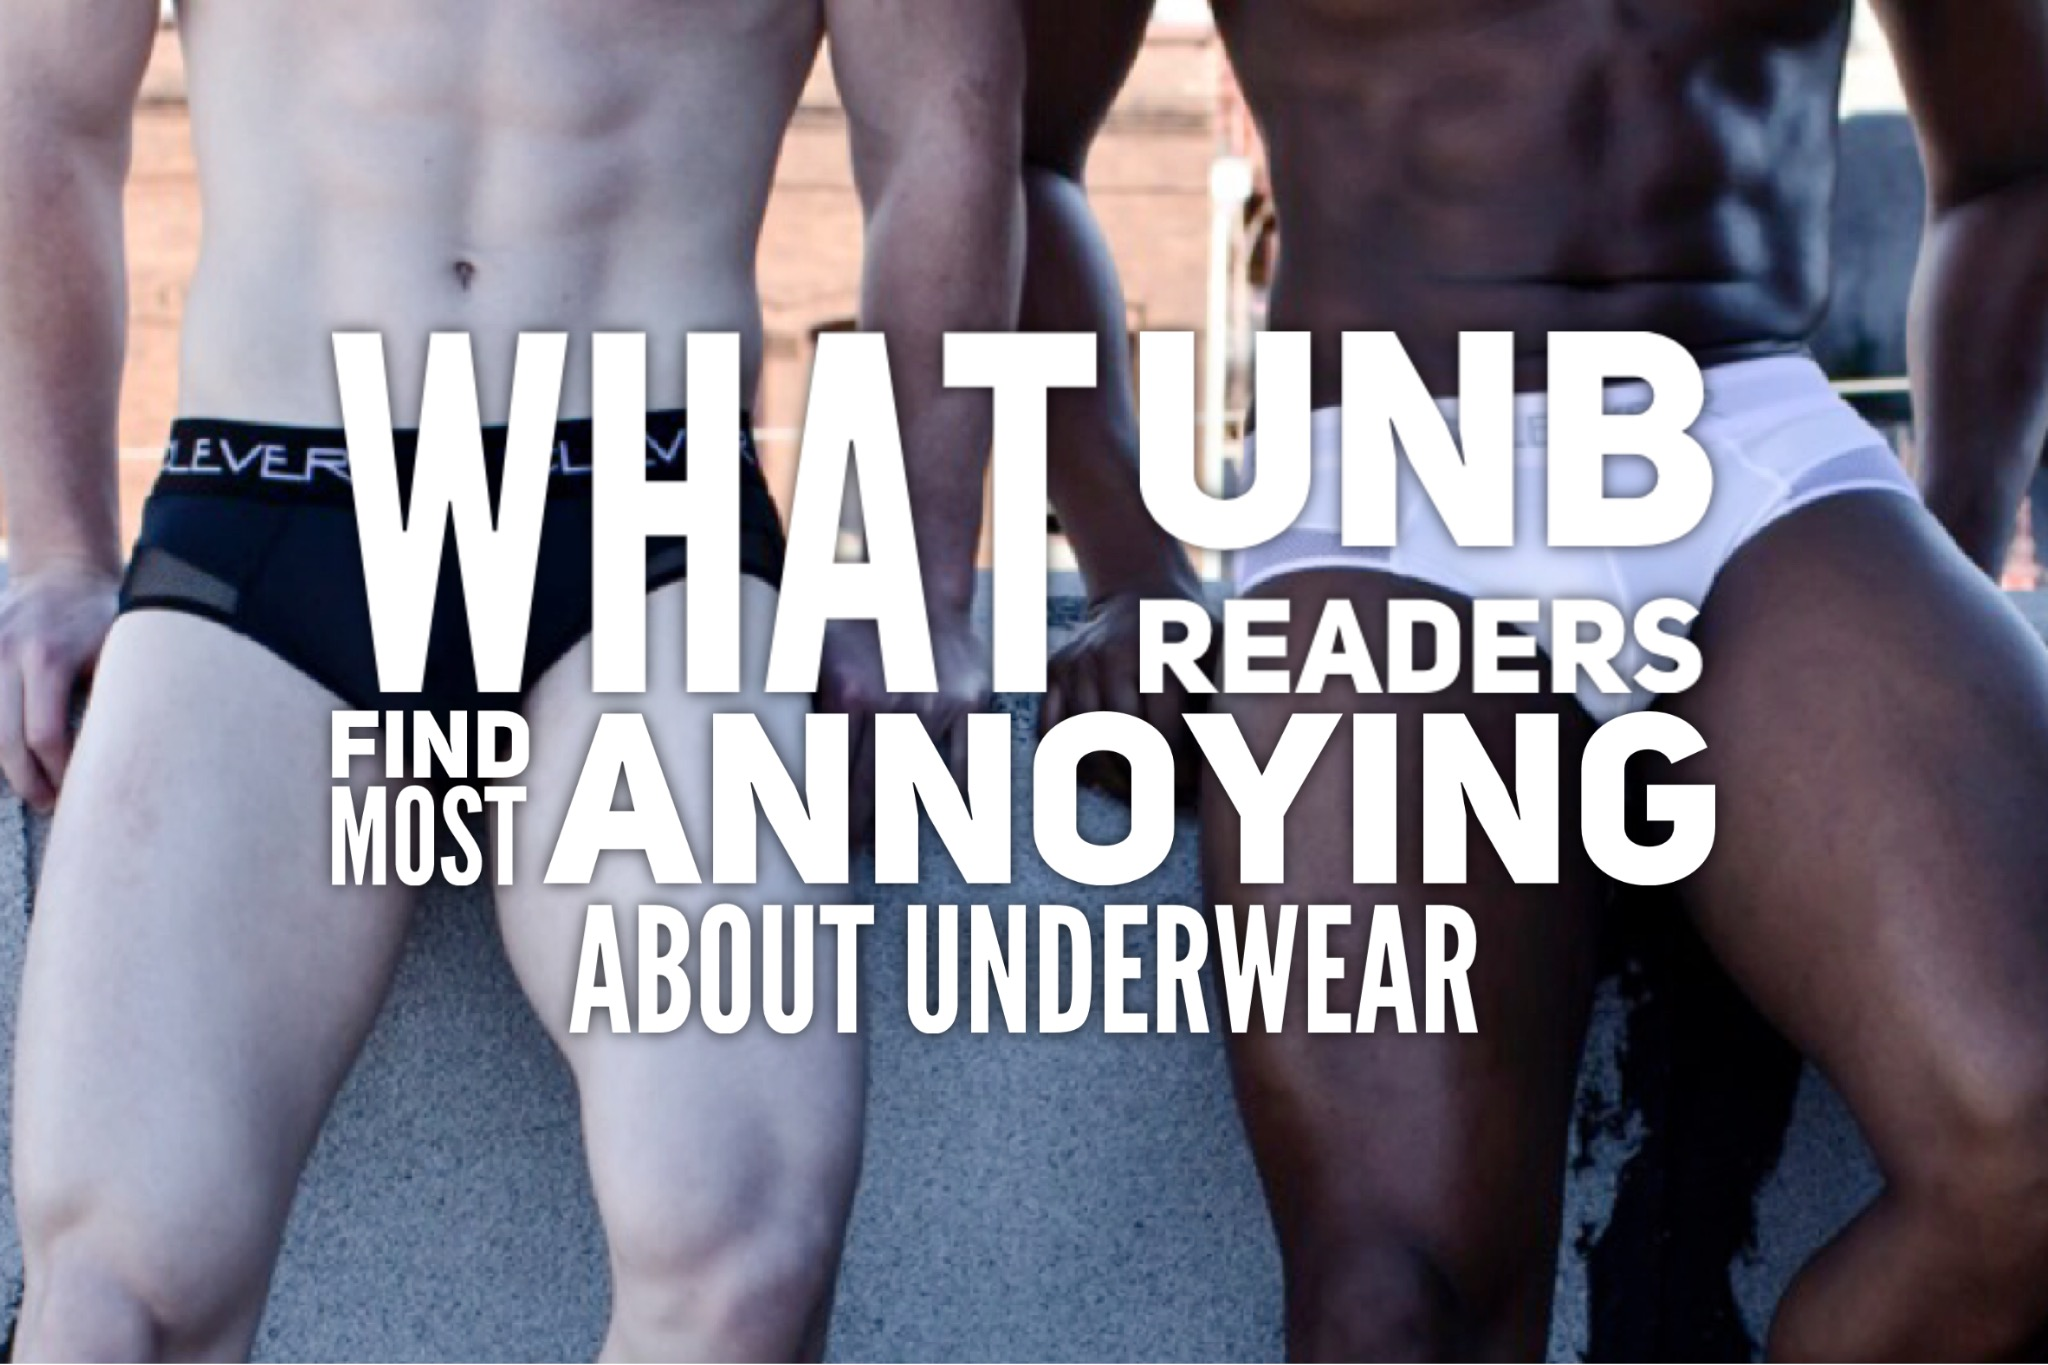 What do you guys find most annoying about Underwear?